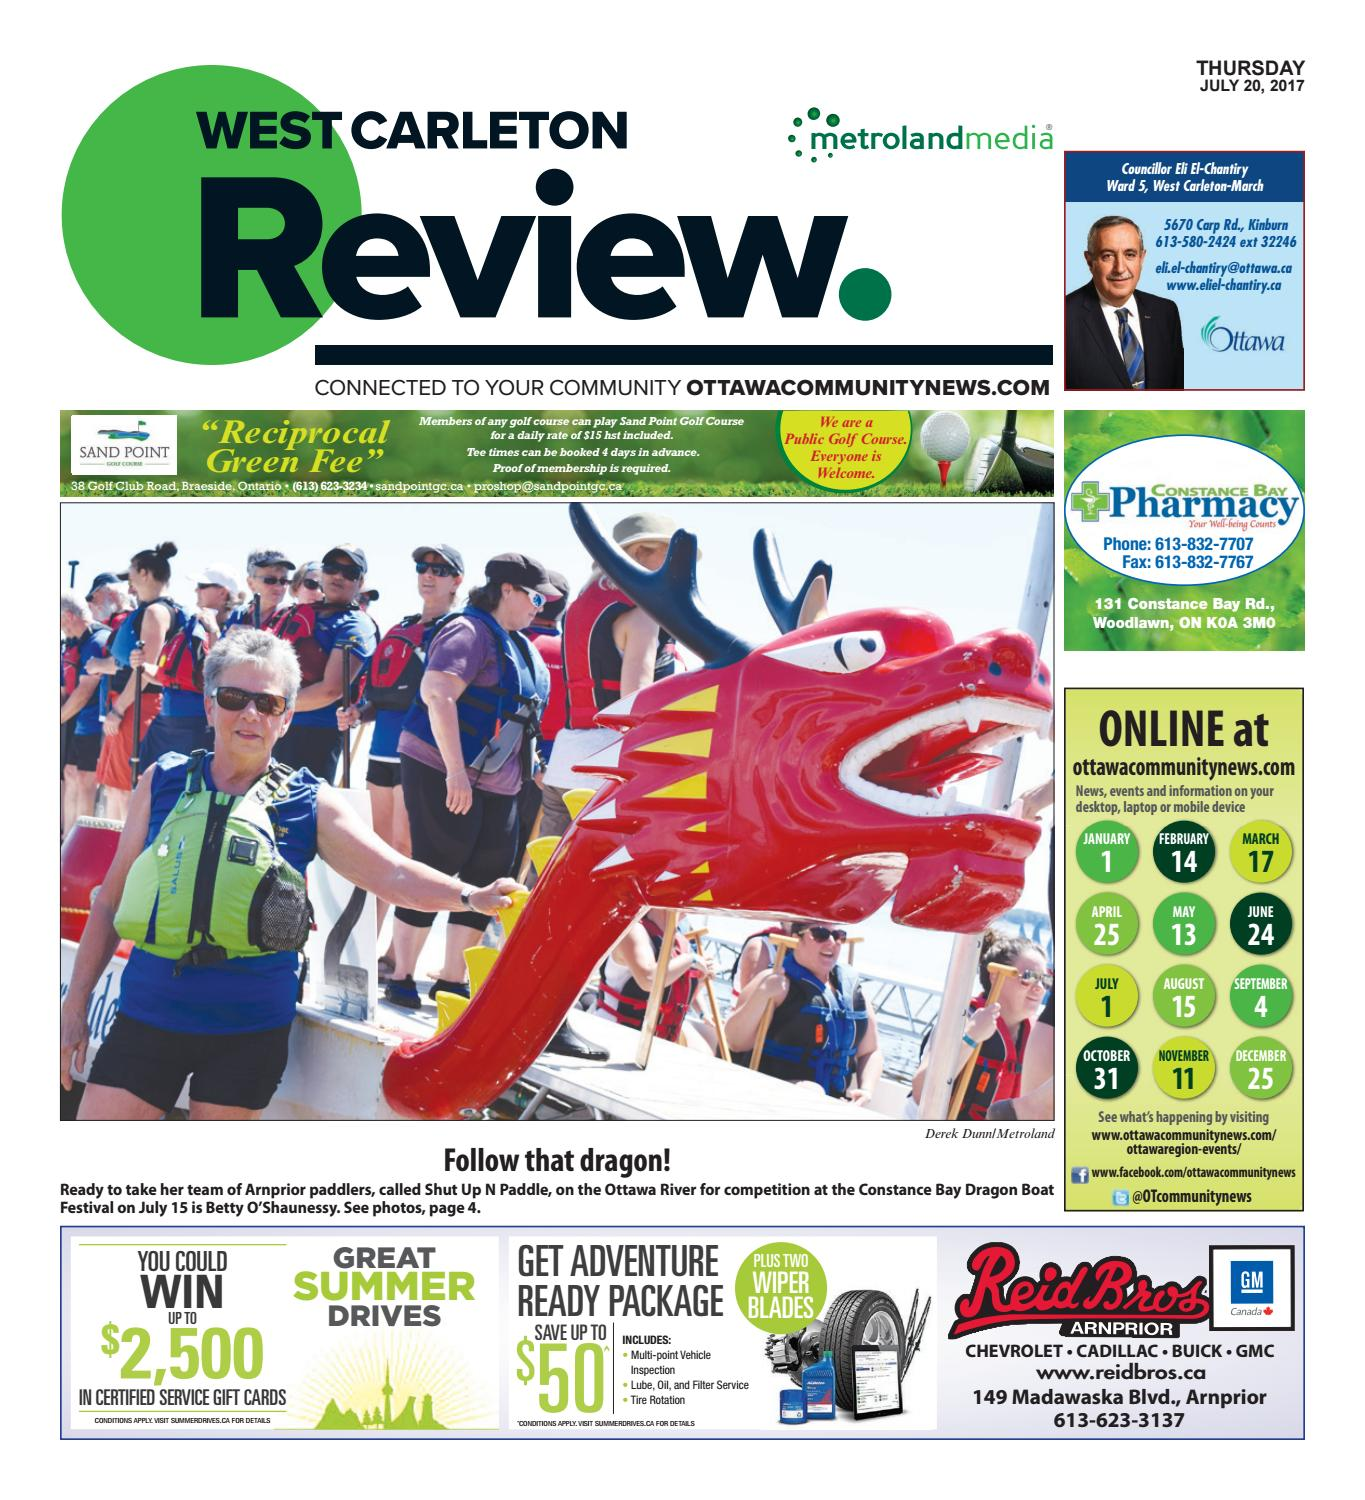 d6f8a7be7943f3 Westcarleton072017 by Metroland East - West Carleton Review - issuu